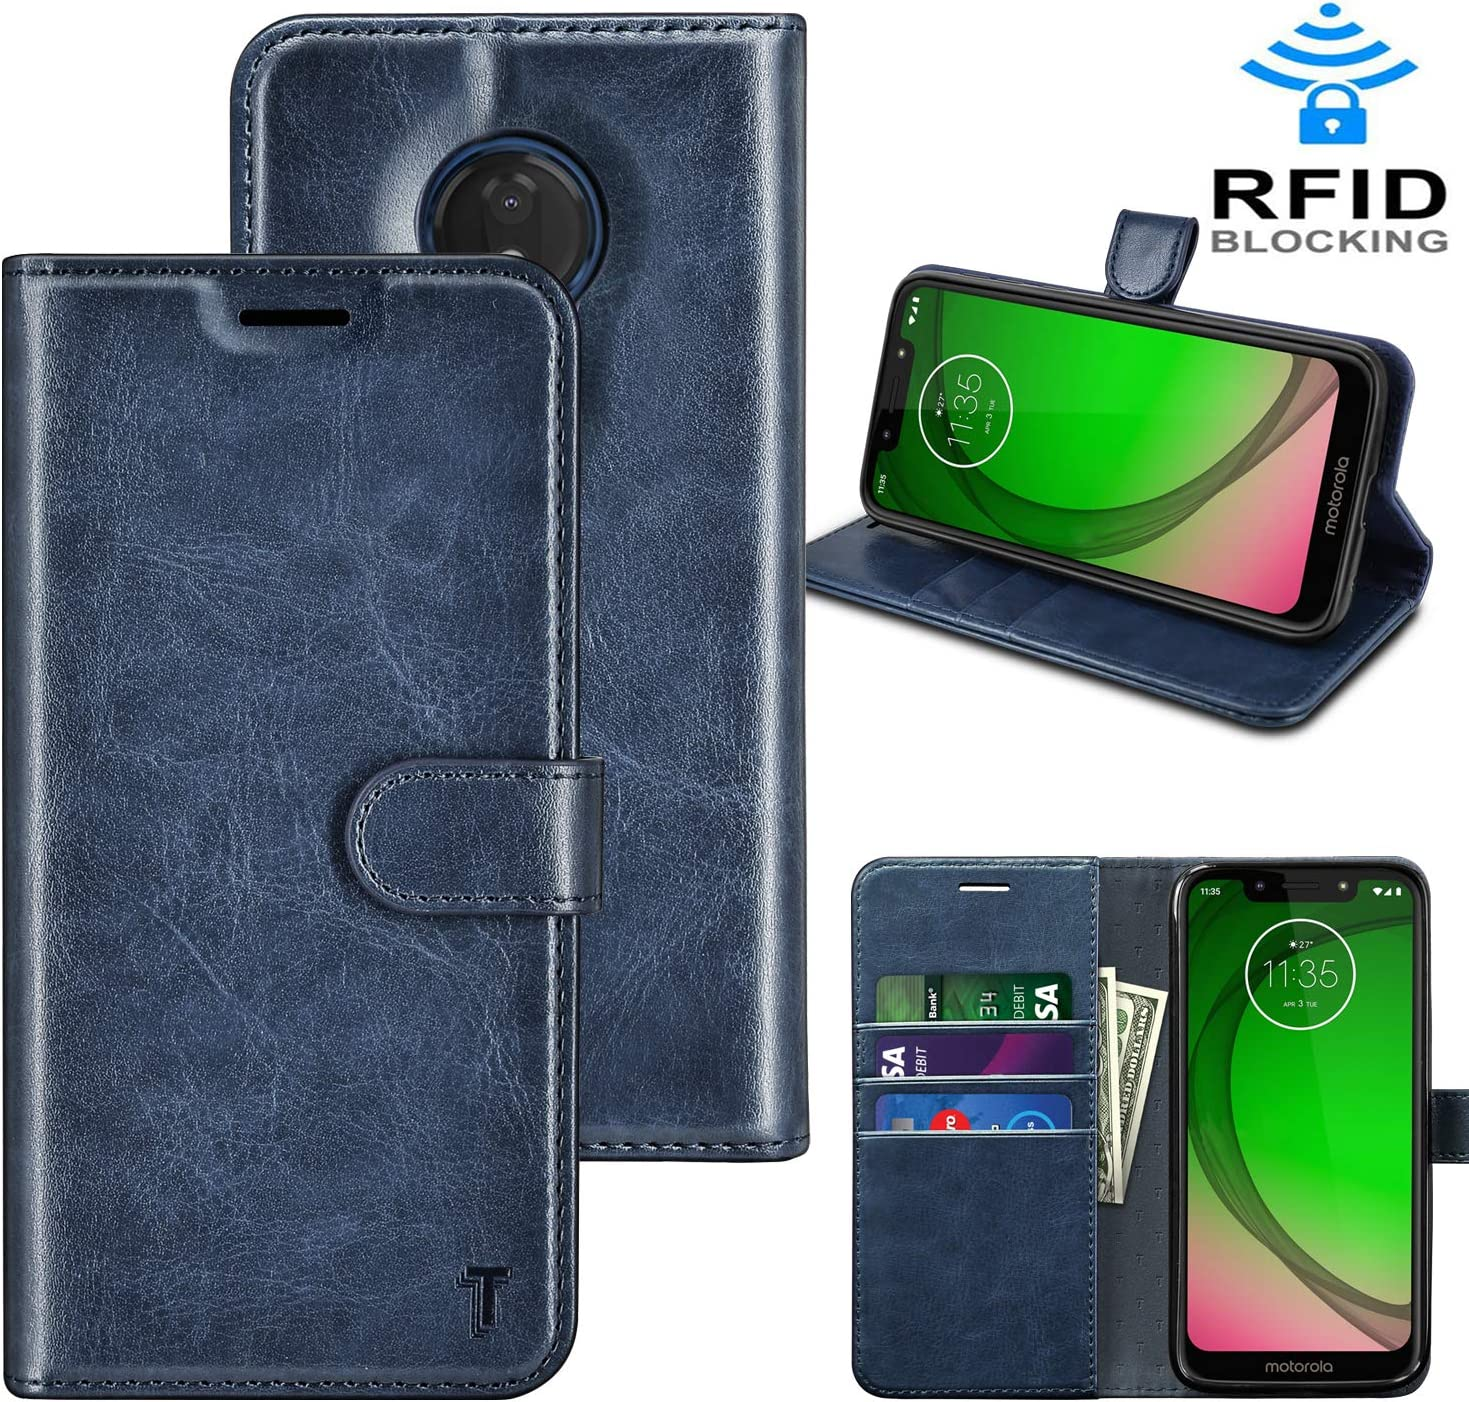 Takfox Moto G7 Power Case, Motorola G7 Supra/G7 Optimo Maxx XT1955DL/G7 Power Case Wallet PU Leather Flip Cover w/Card Slots ID Credit Card Holder [RFID Blocking][Kickstand] Magnetic Phone Case-Blue